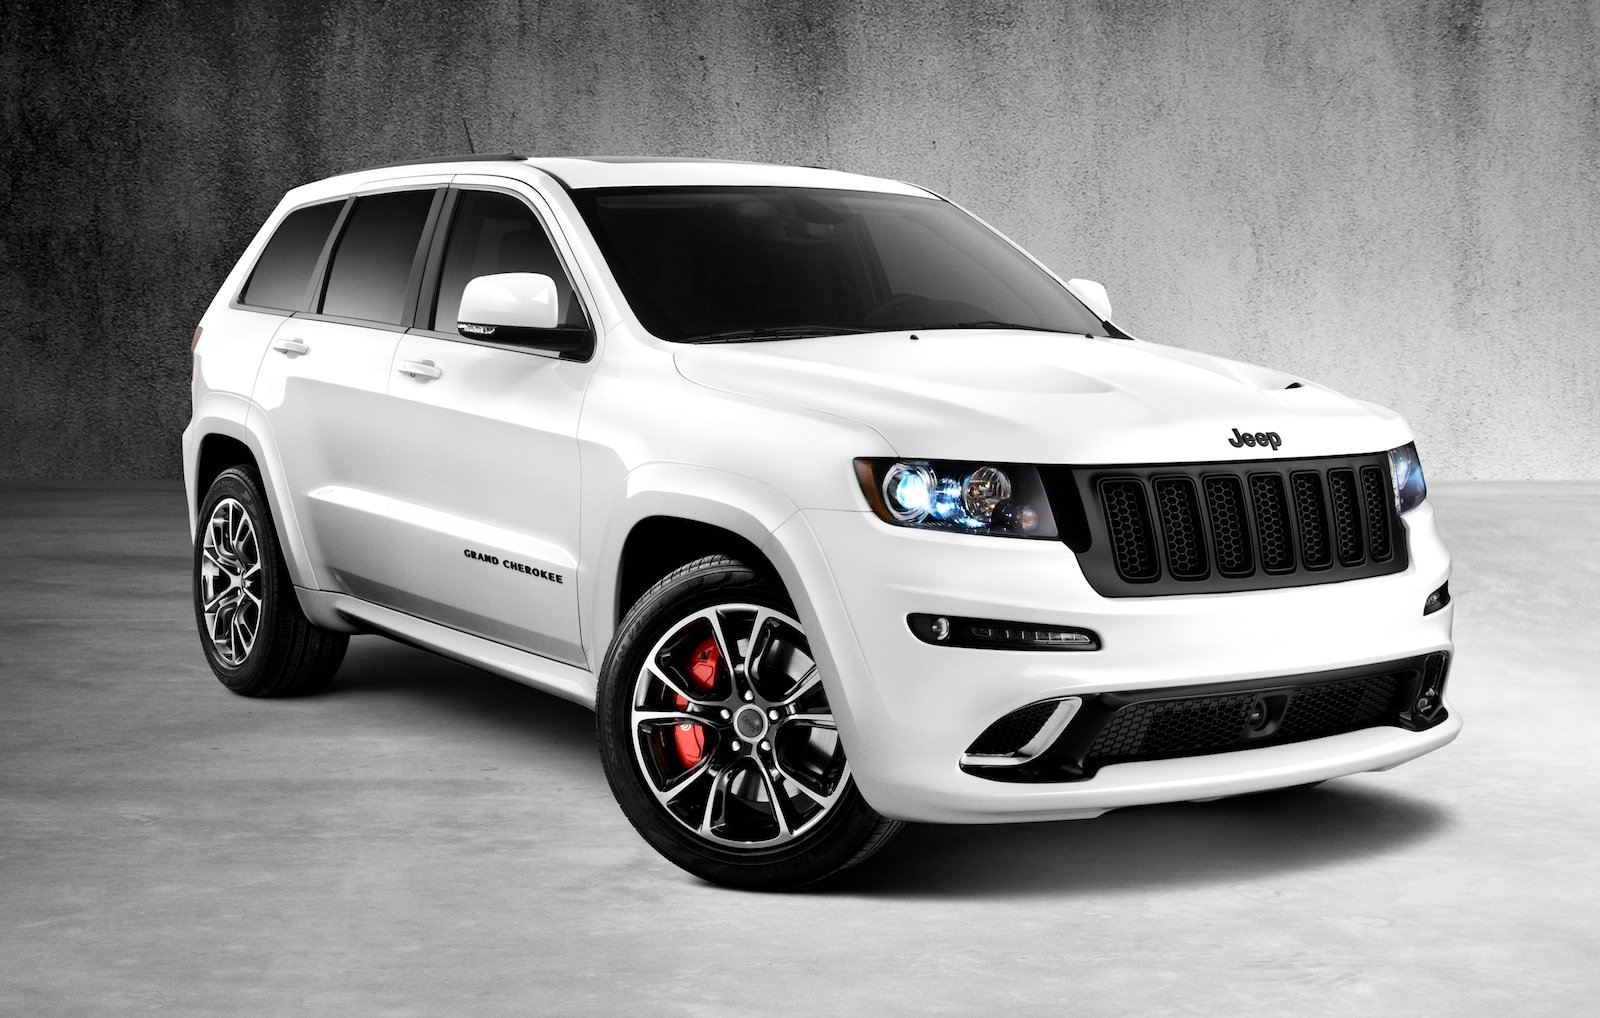 jeep grand cherokee srt8 alpine vapour special editions for australia photos 1 of 7. Black Bedroom Furniture Sets. Home Design Ideas